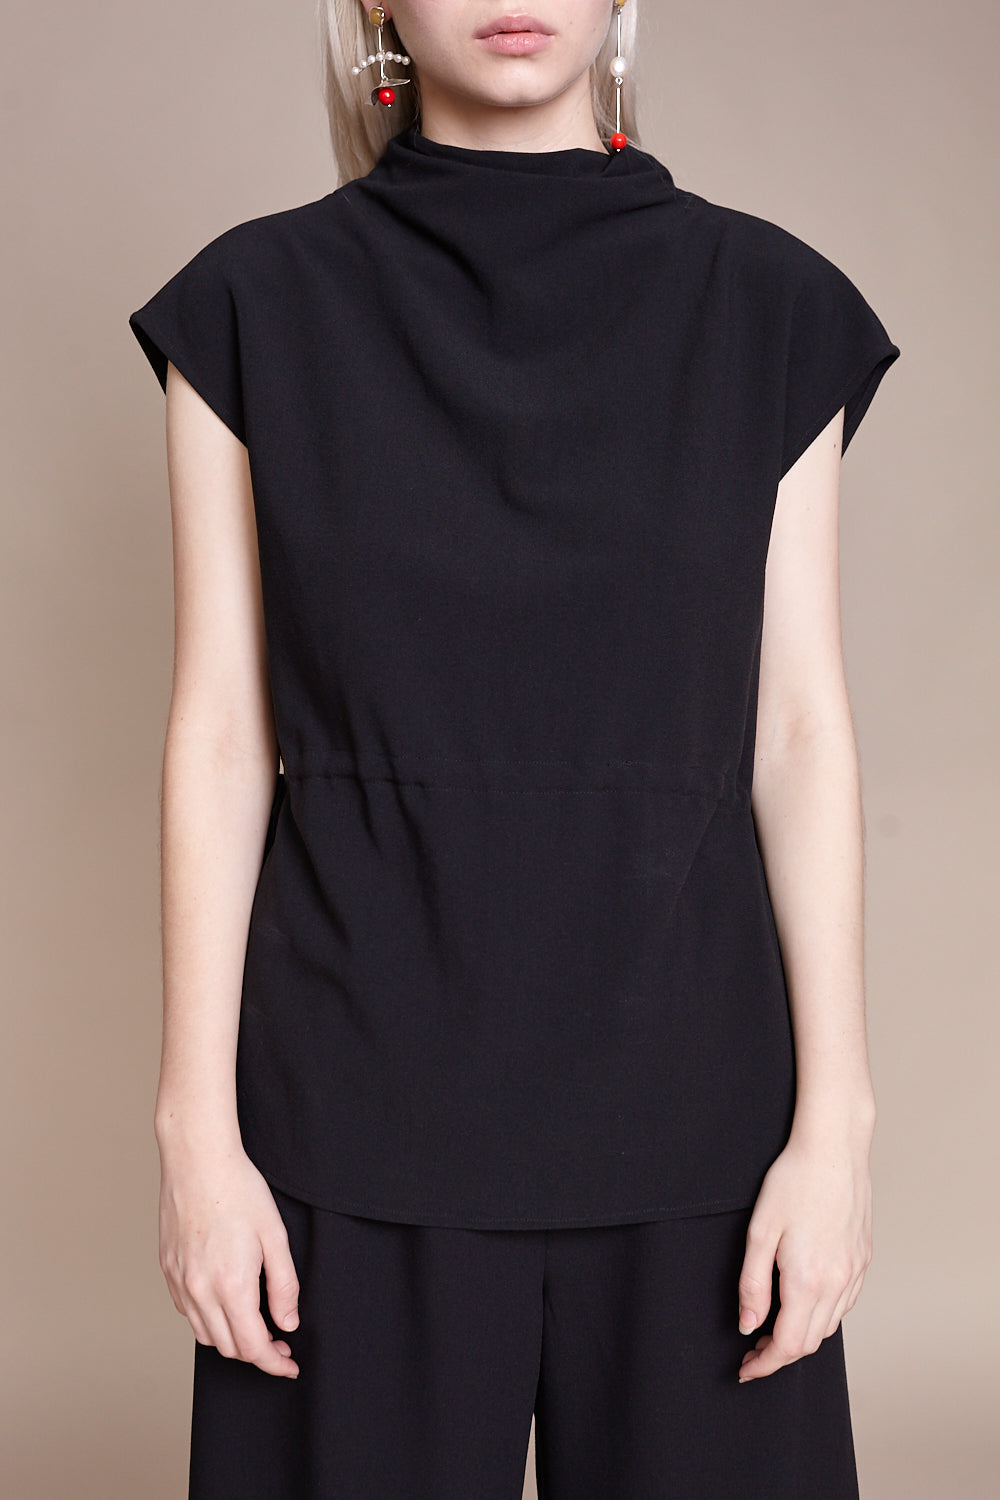 Augusta Top in Black